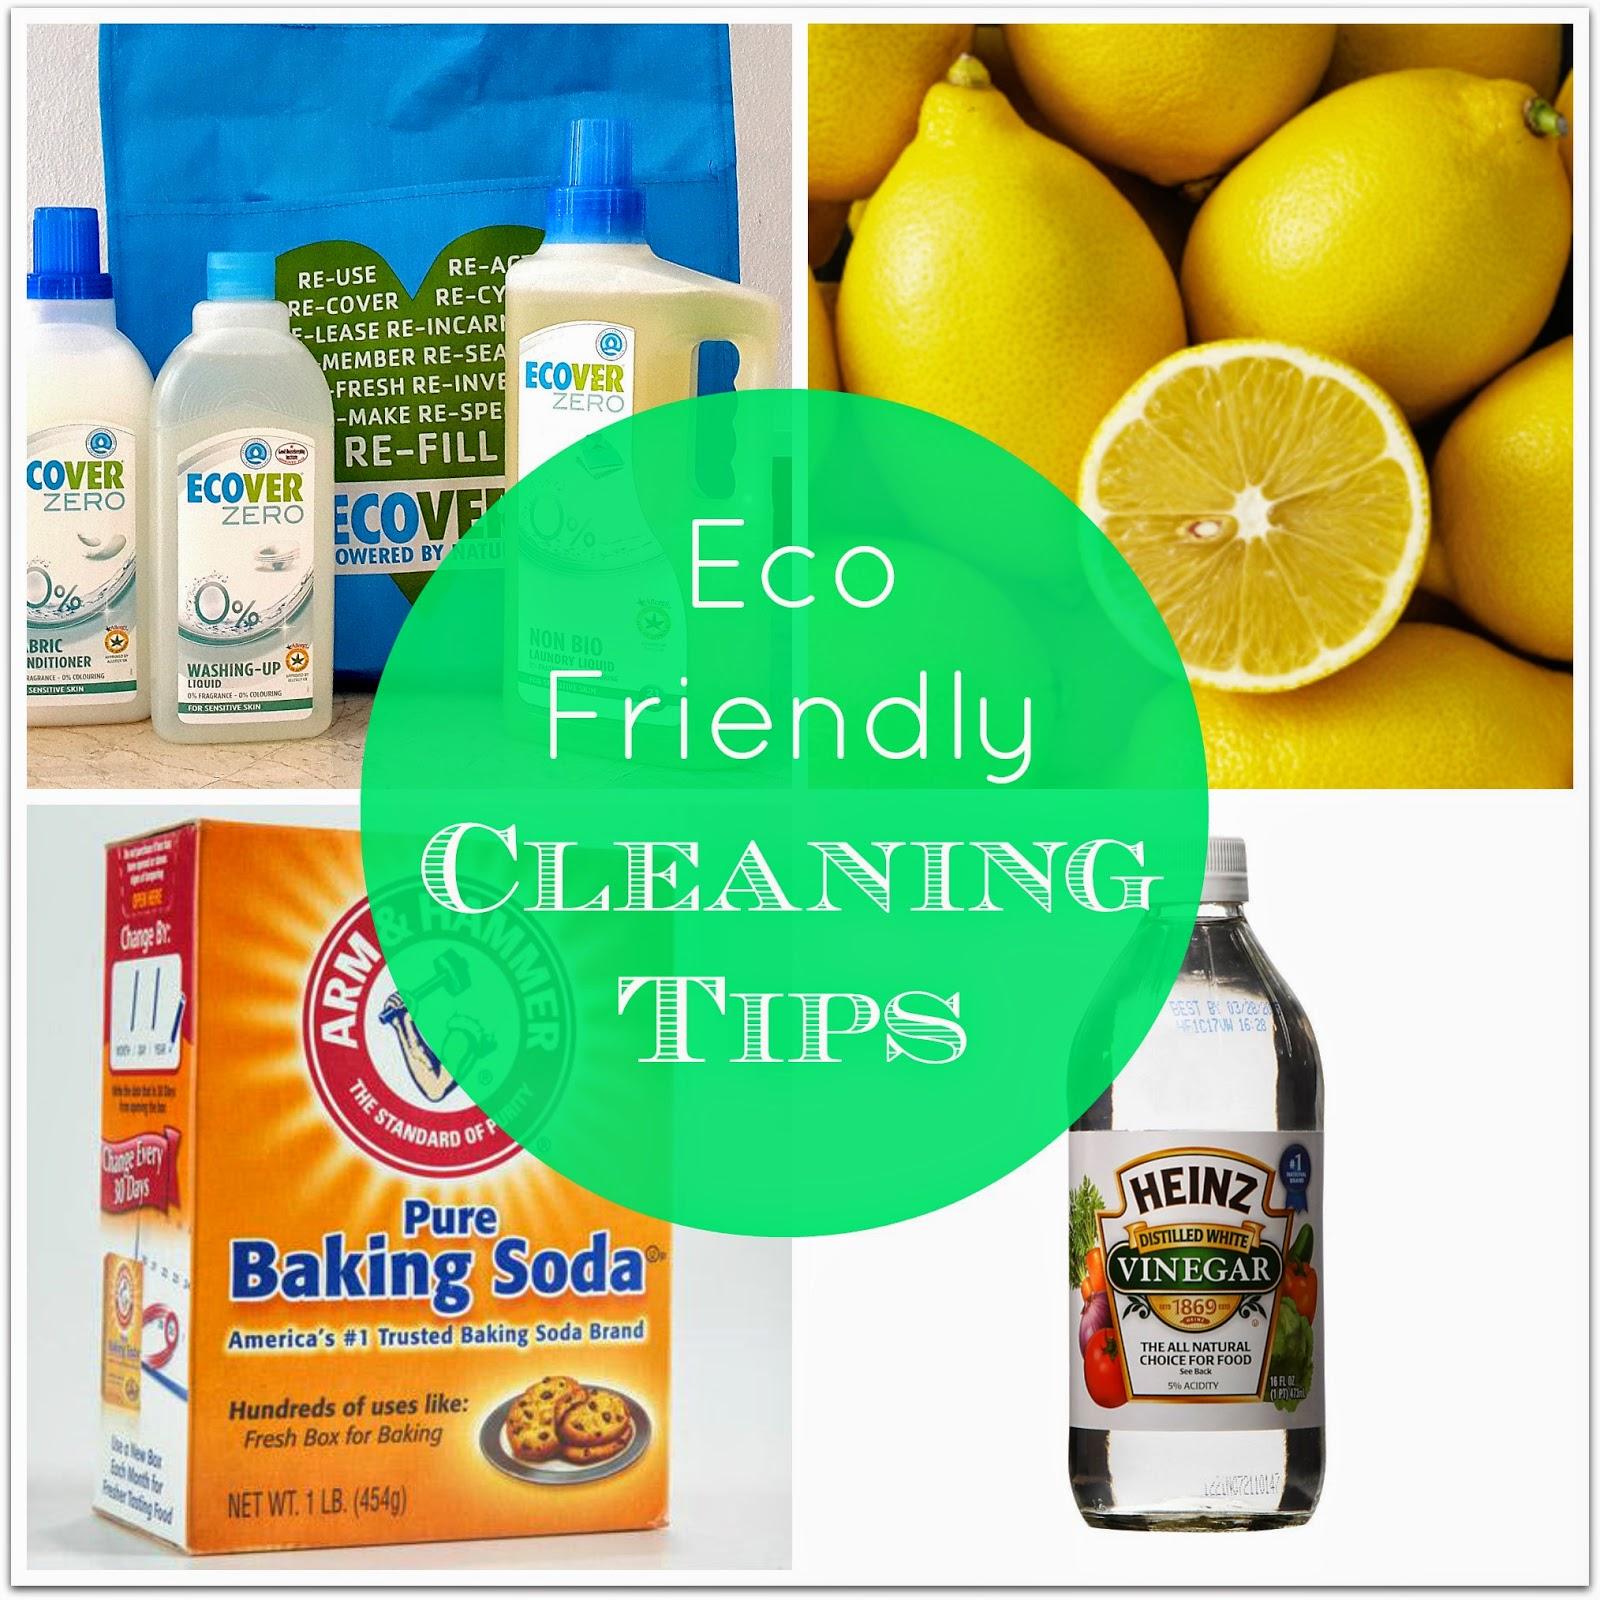 ecofriendly cleaning tips plus giveaway and discounts